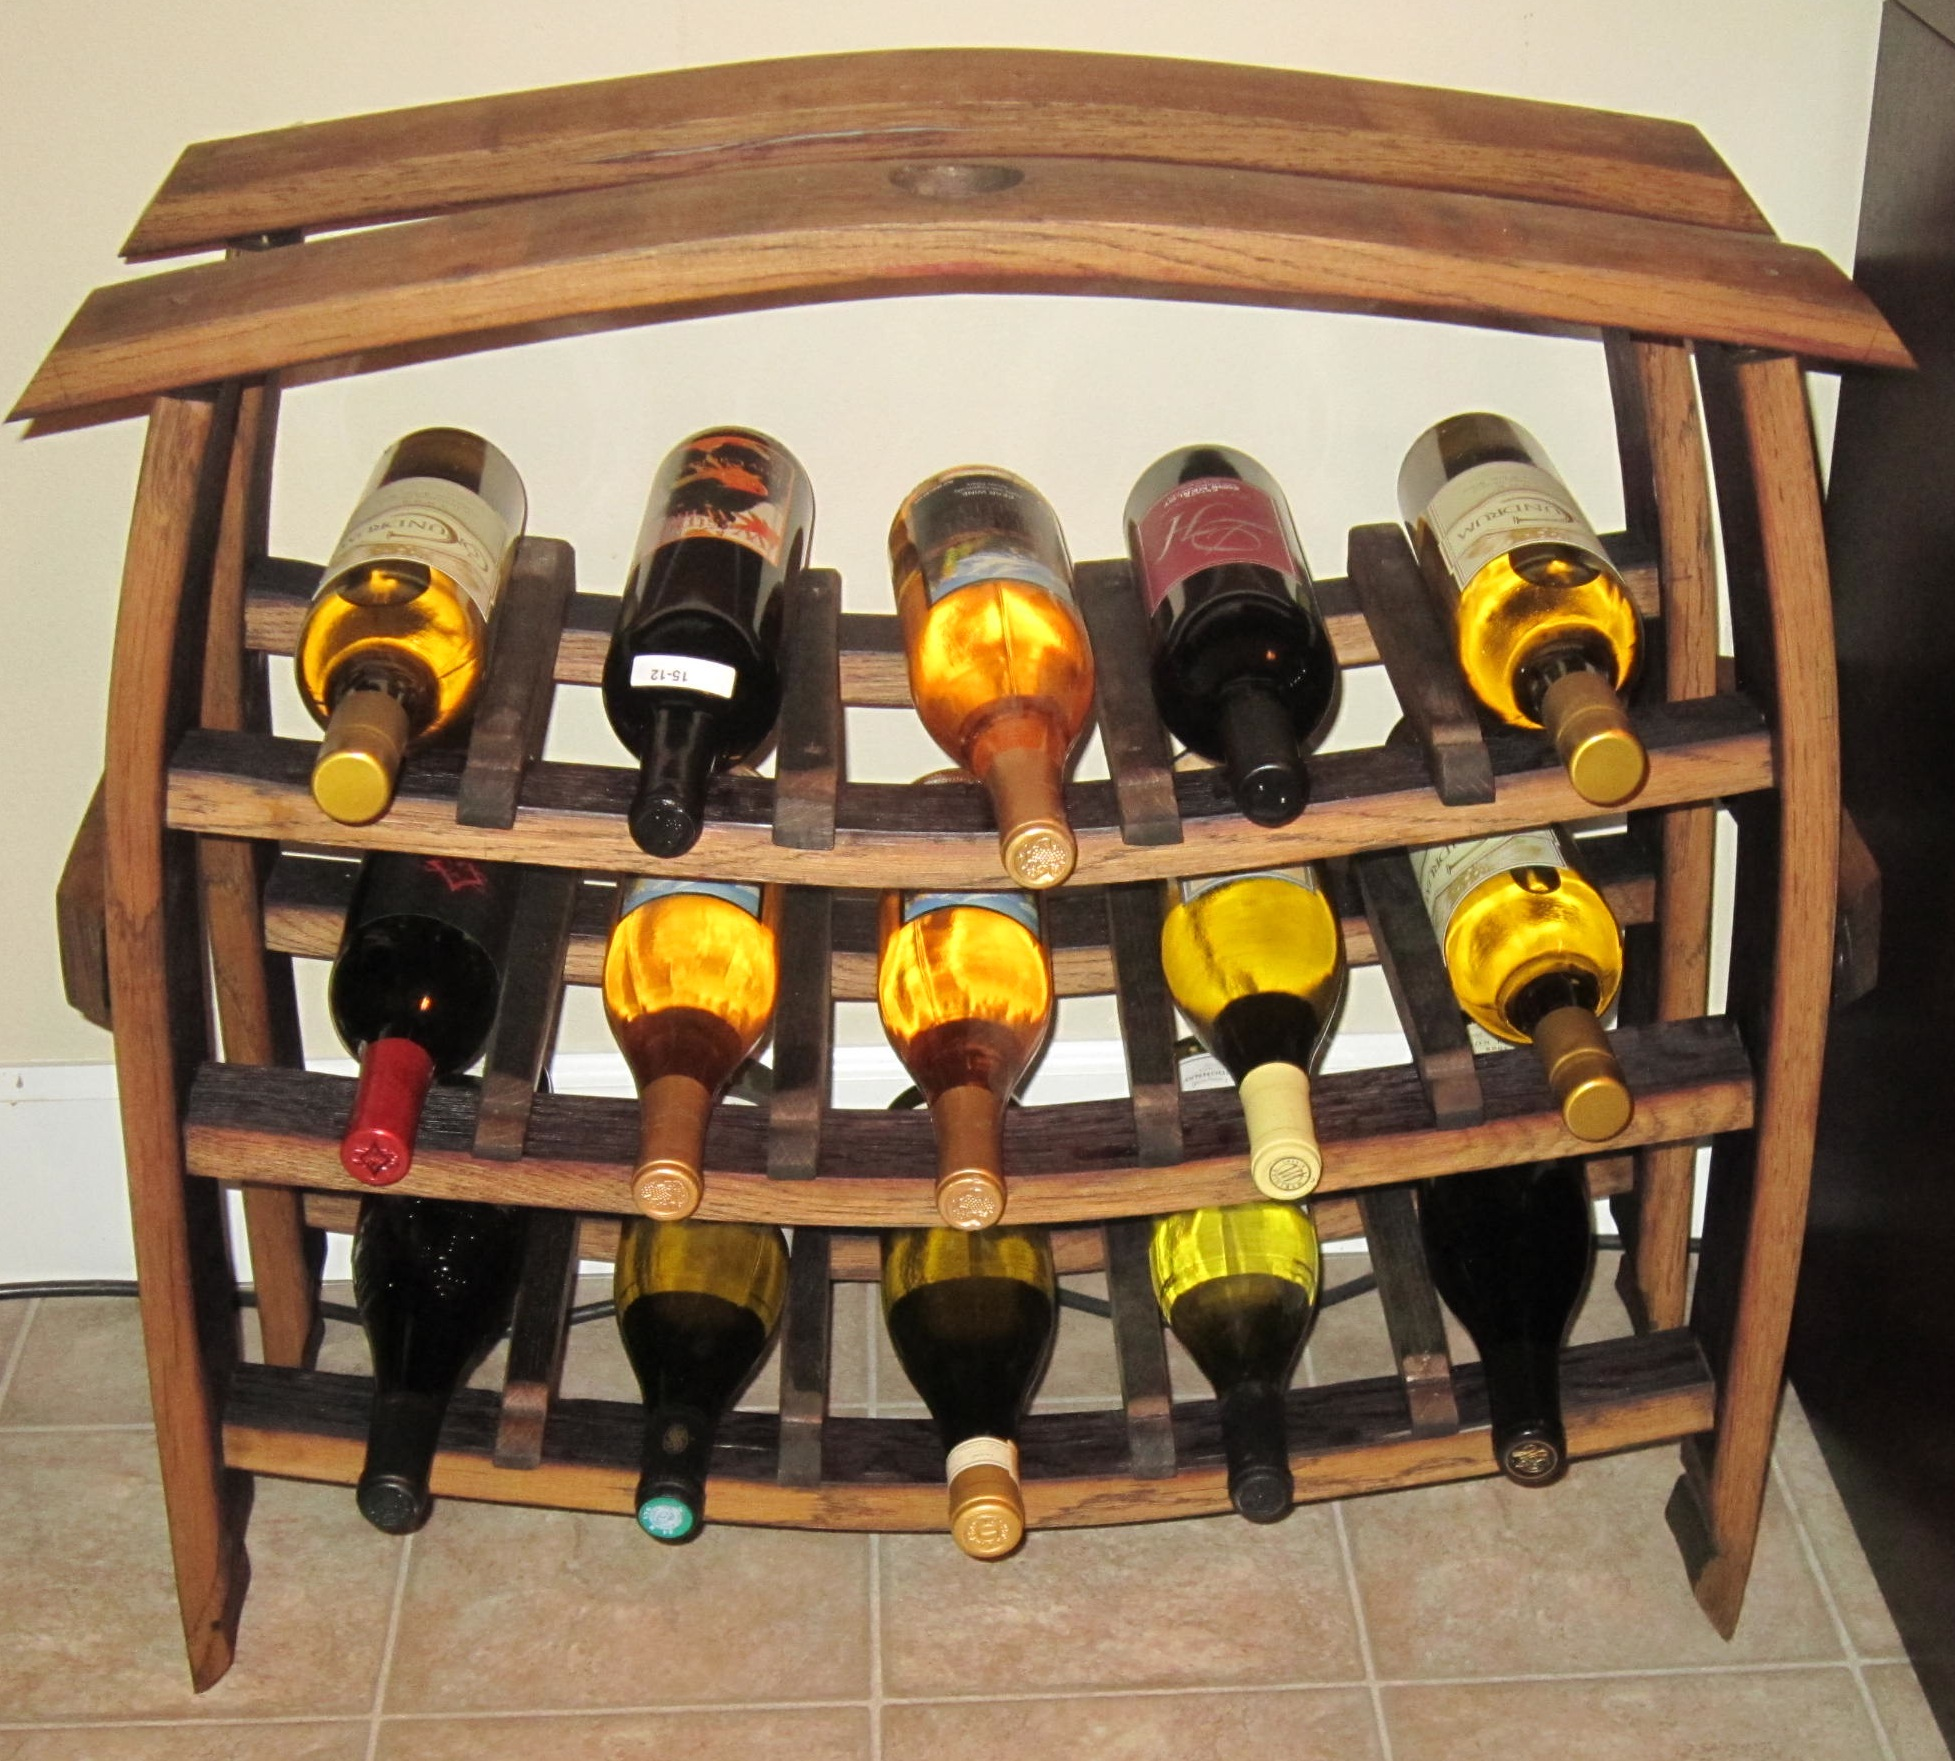 15 Bottle Wine Rackstave Designs